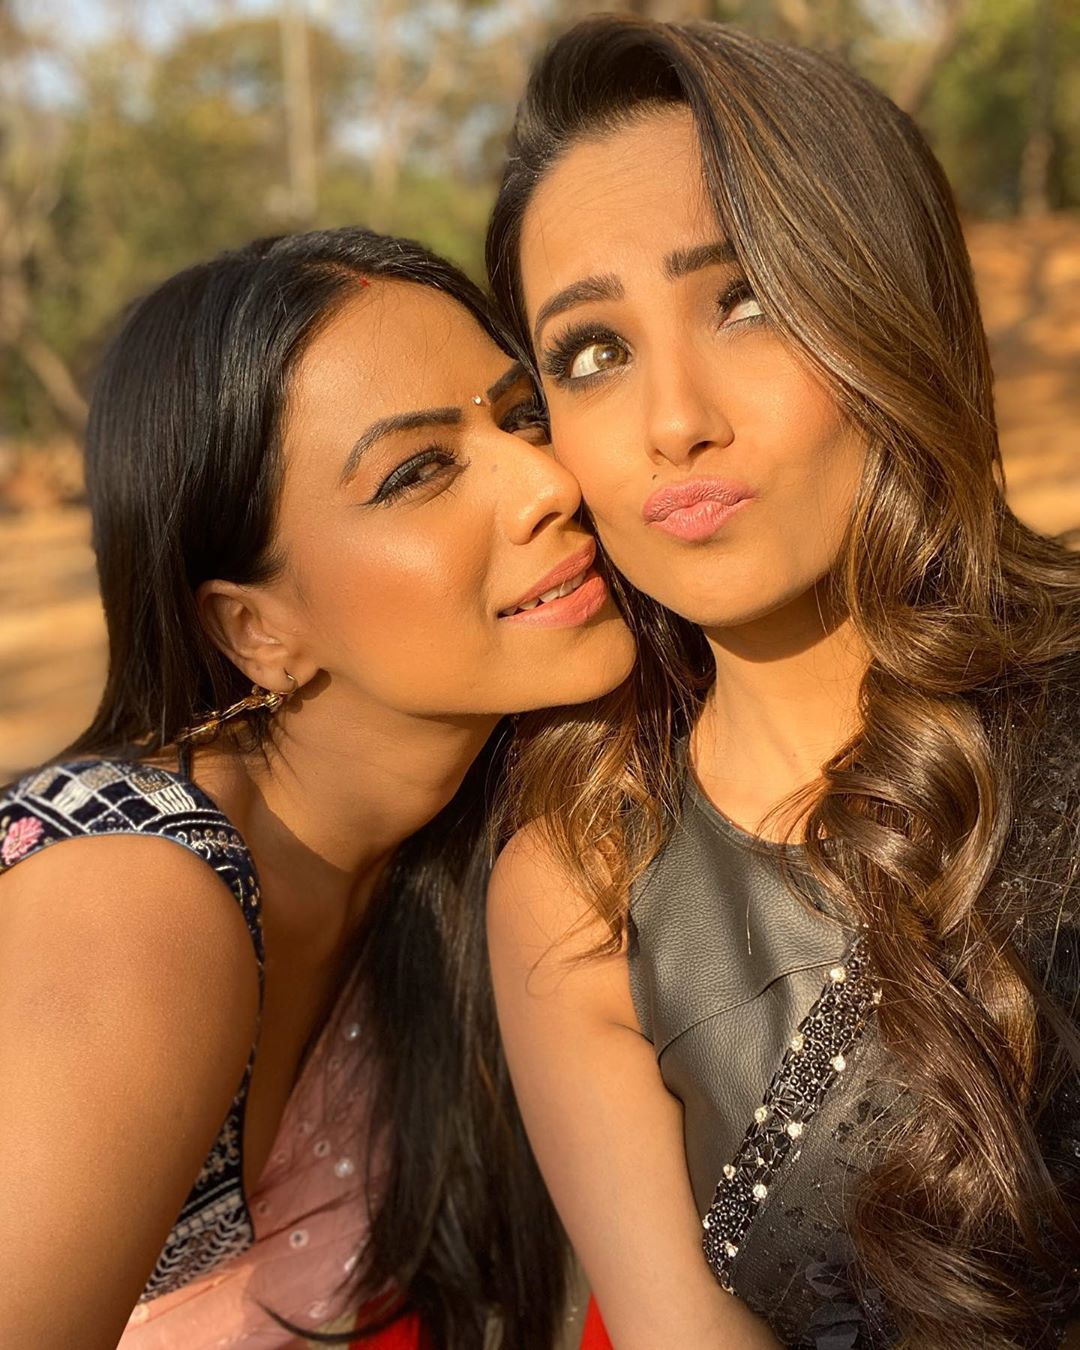 103 9k Likes 277 Comments Anita H Reddy Anitahassanandani On Instagram Kiss For Miss His Beautiful Bollywood Actress Stylish Girl Pic Indian Tv Actress